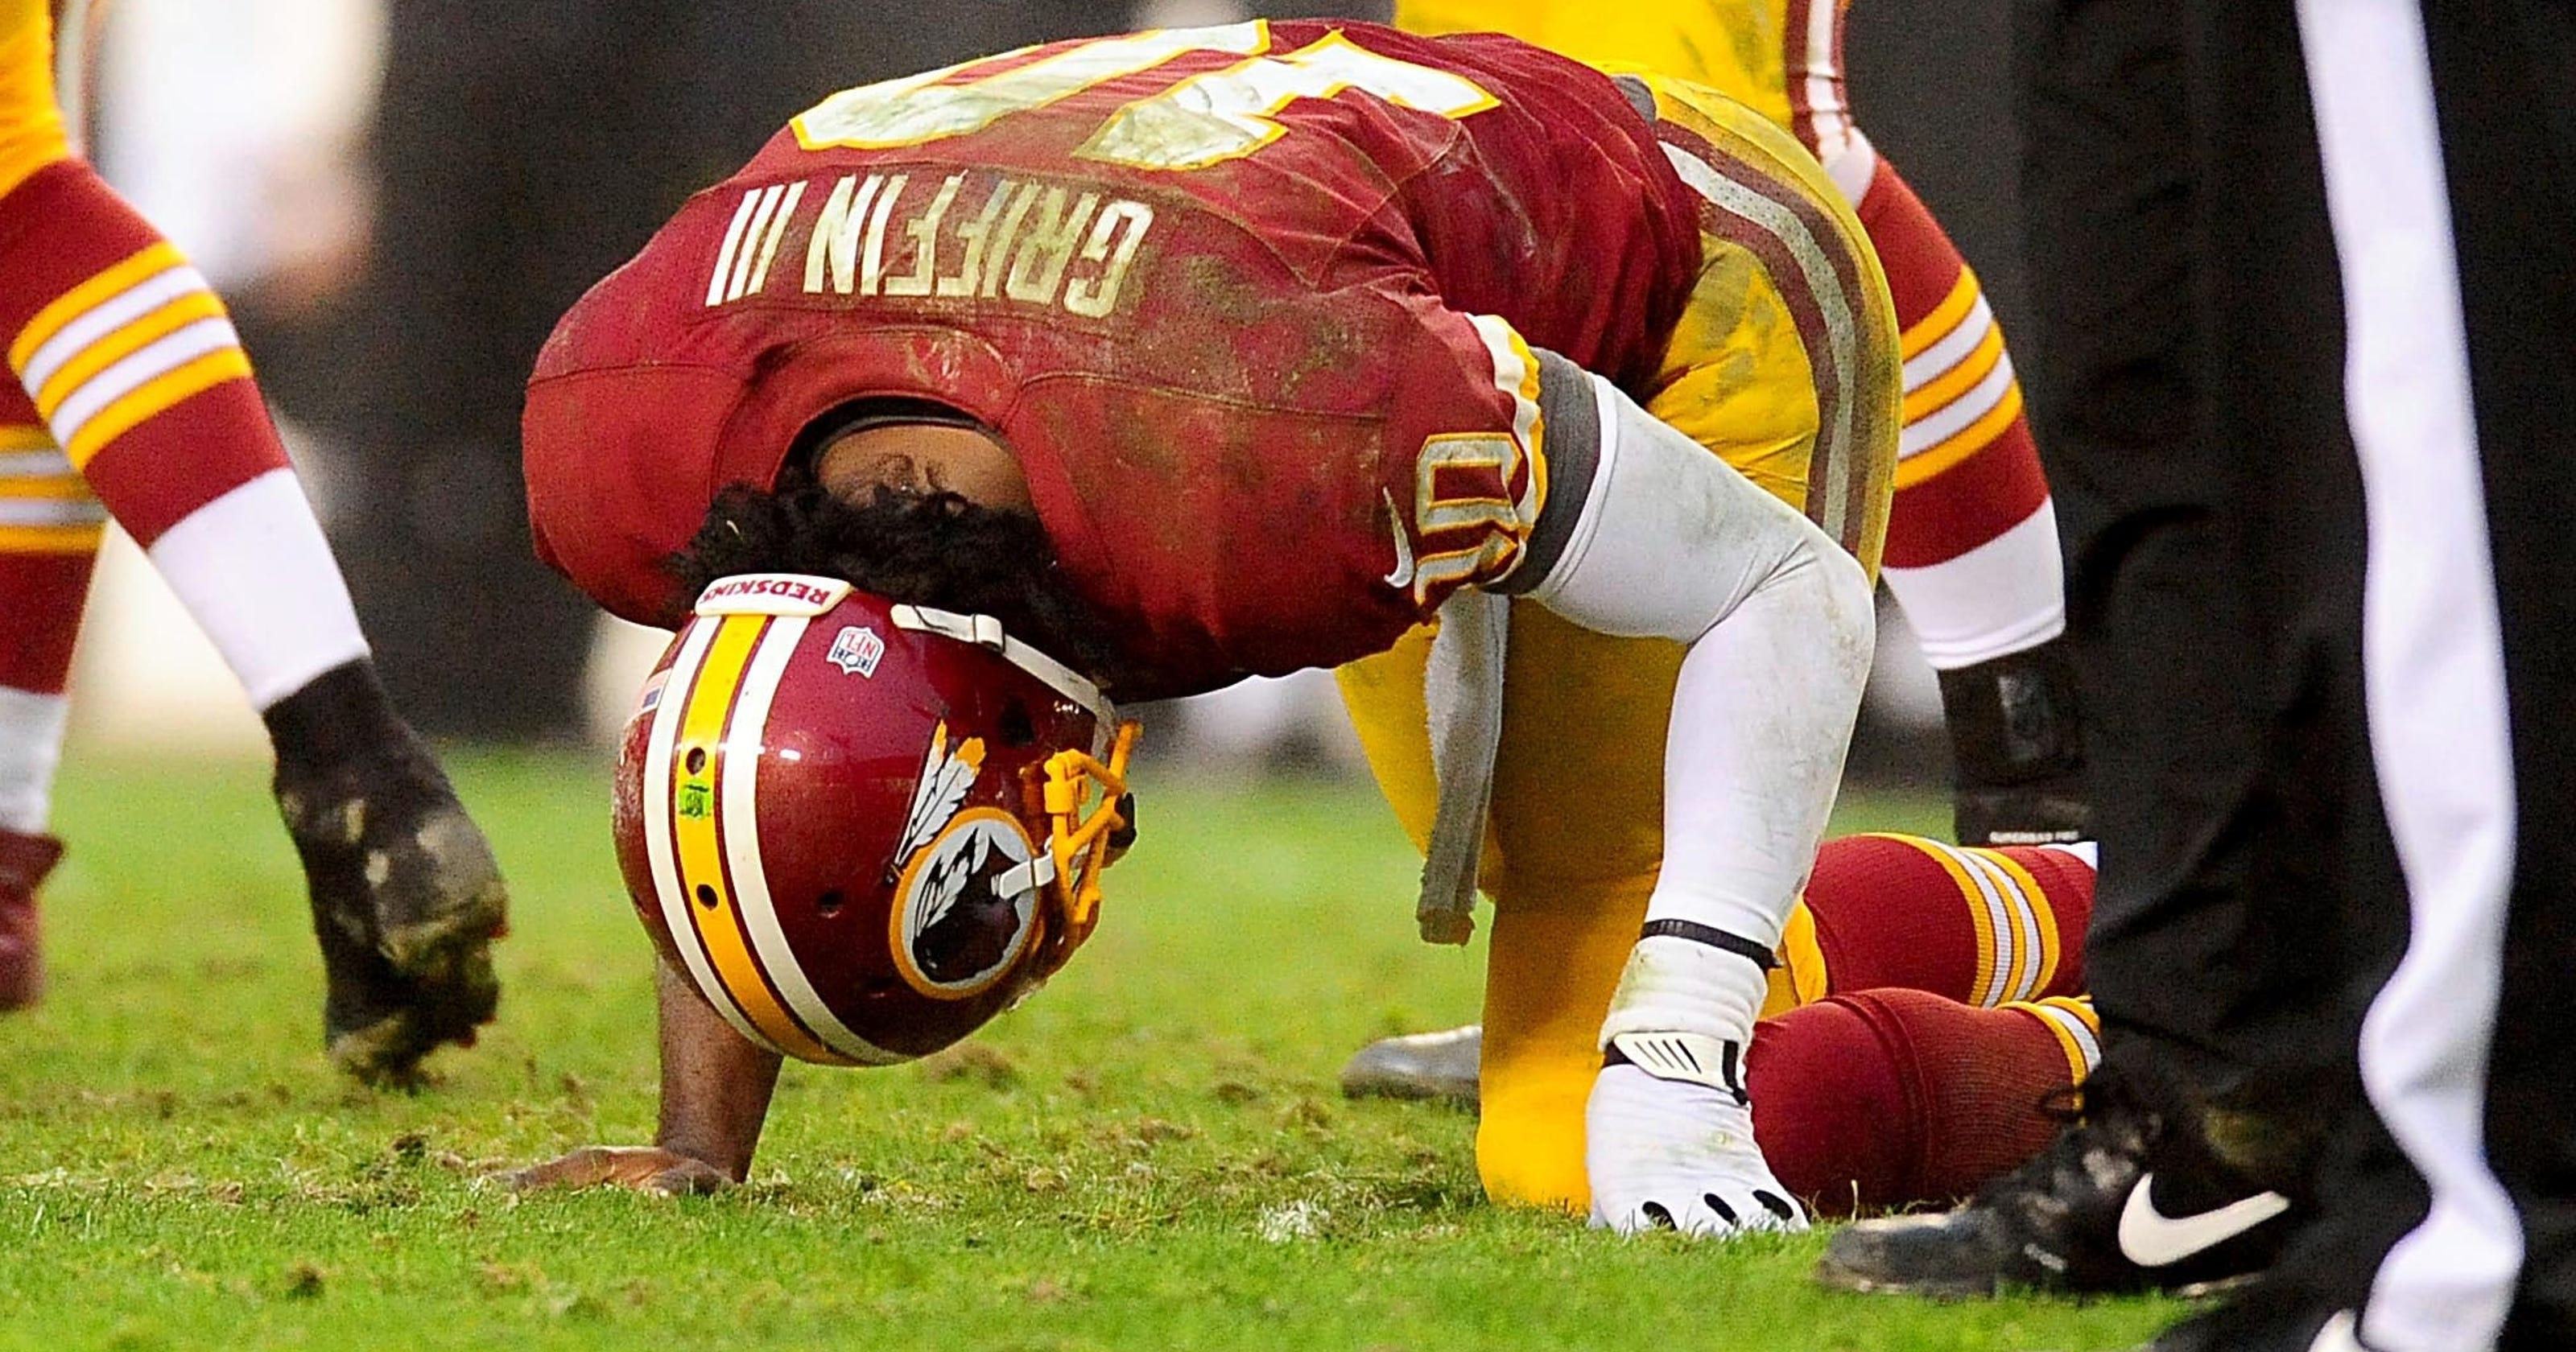 7592d775b Dr. James Andrews says he never cleared Robert Griffin III to go back into  game after injury